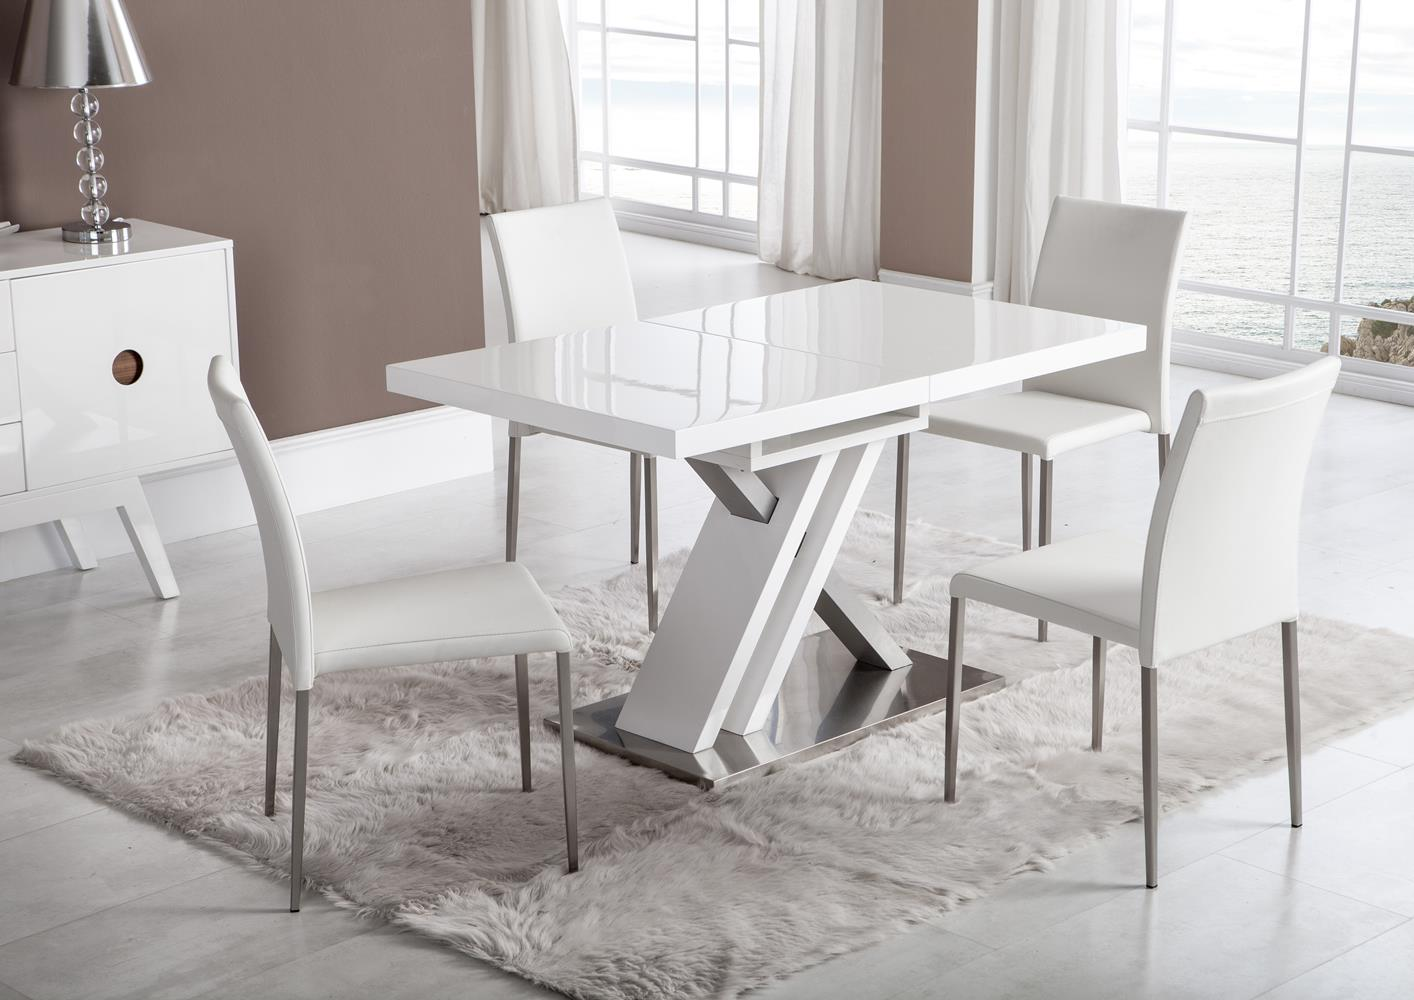 Acheter votre table moderne pied central croix laqu e for Table cuisine contemporaine